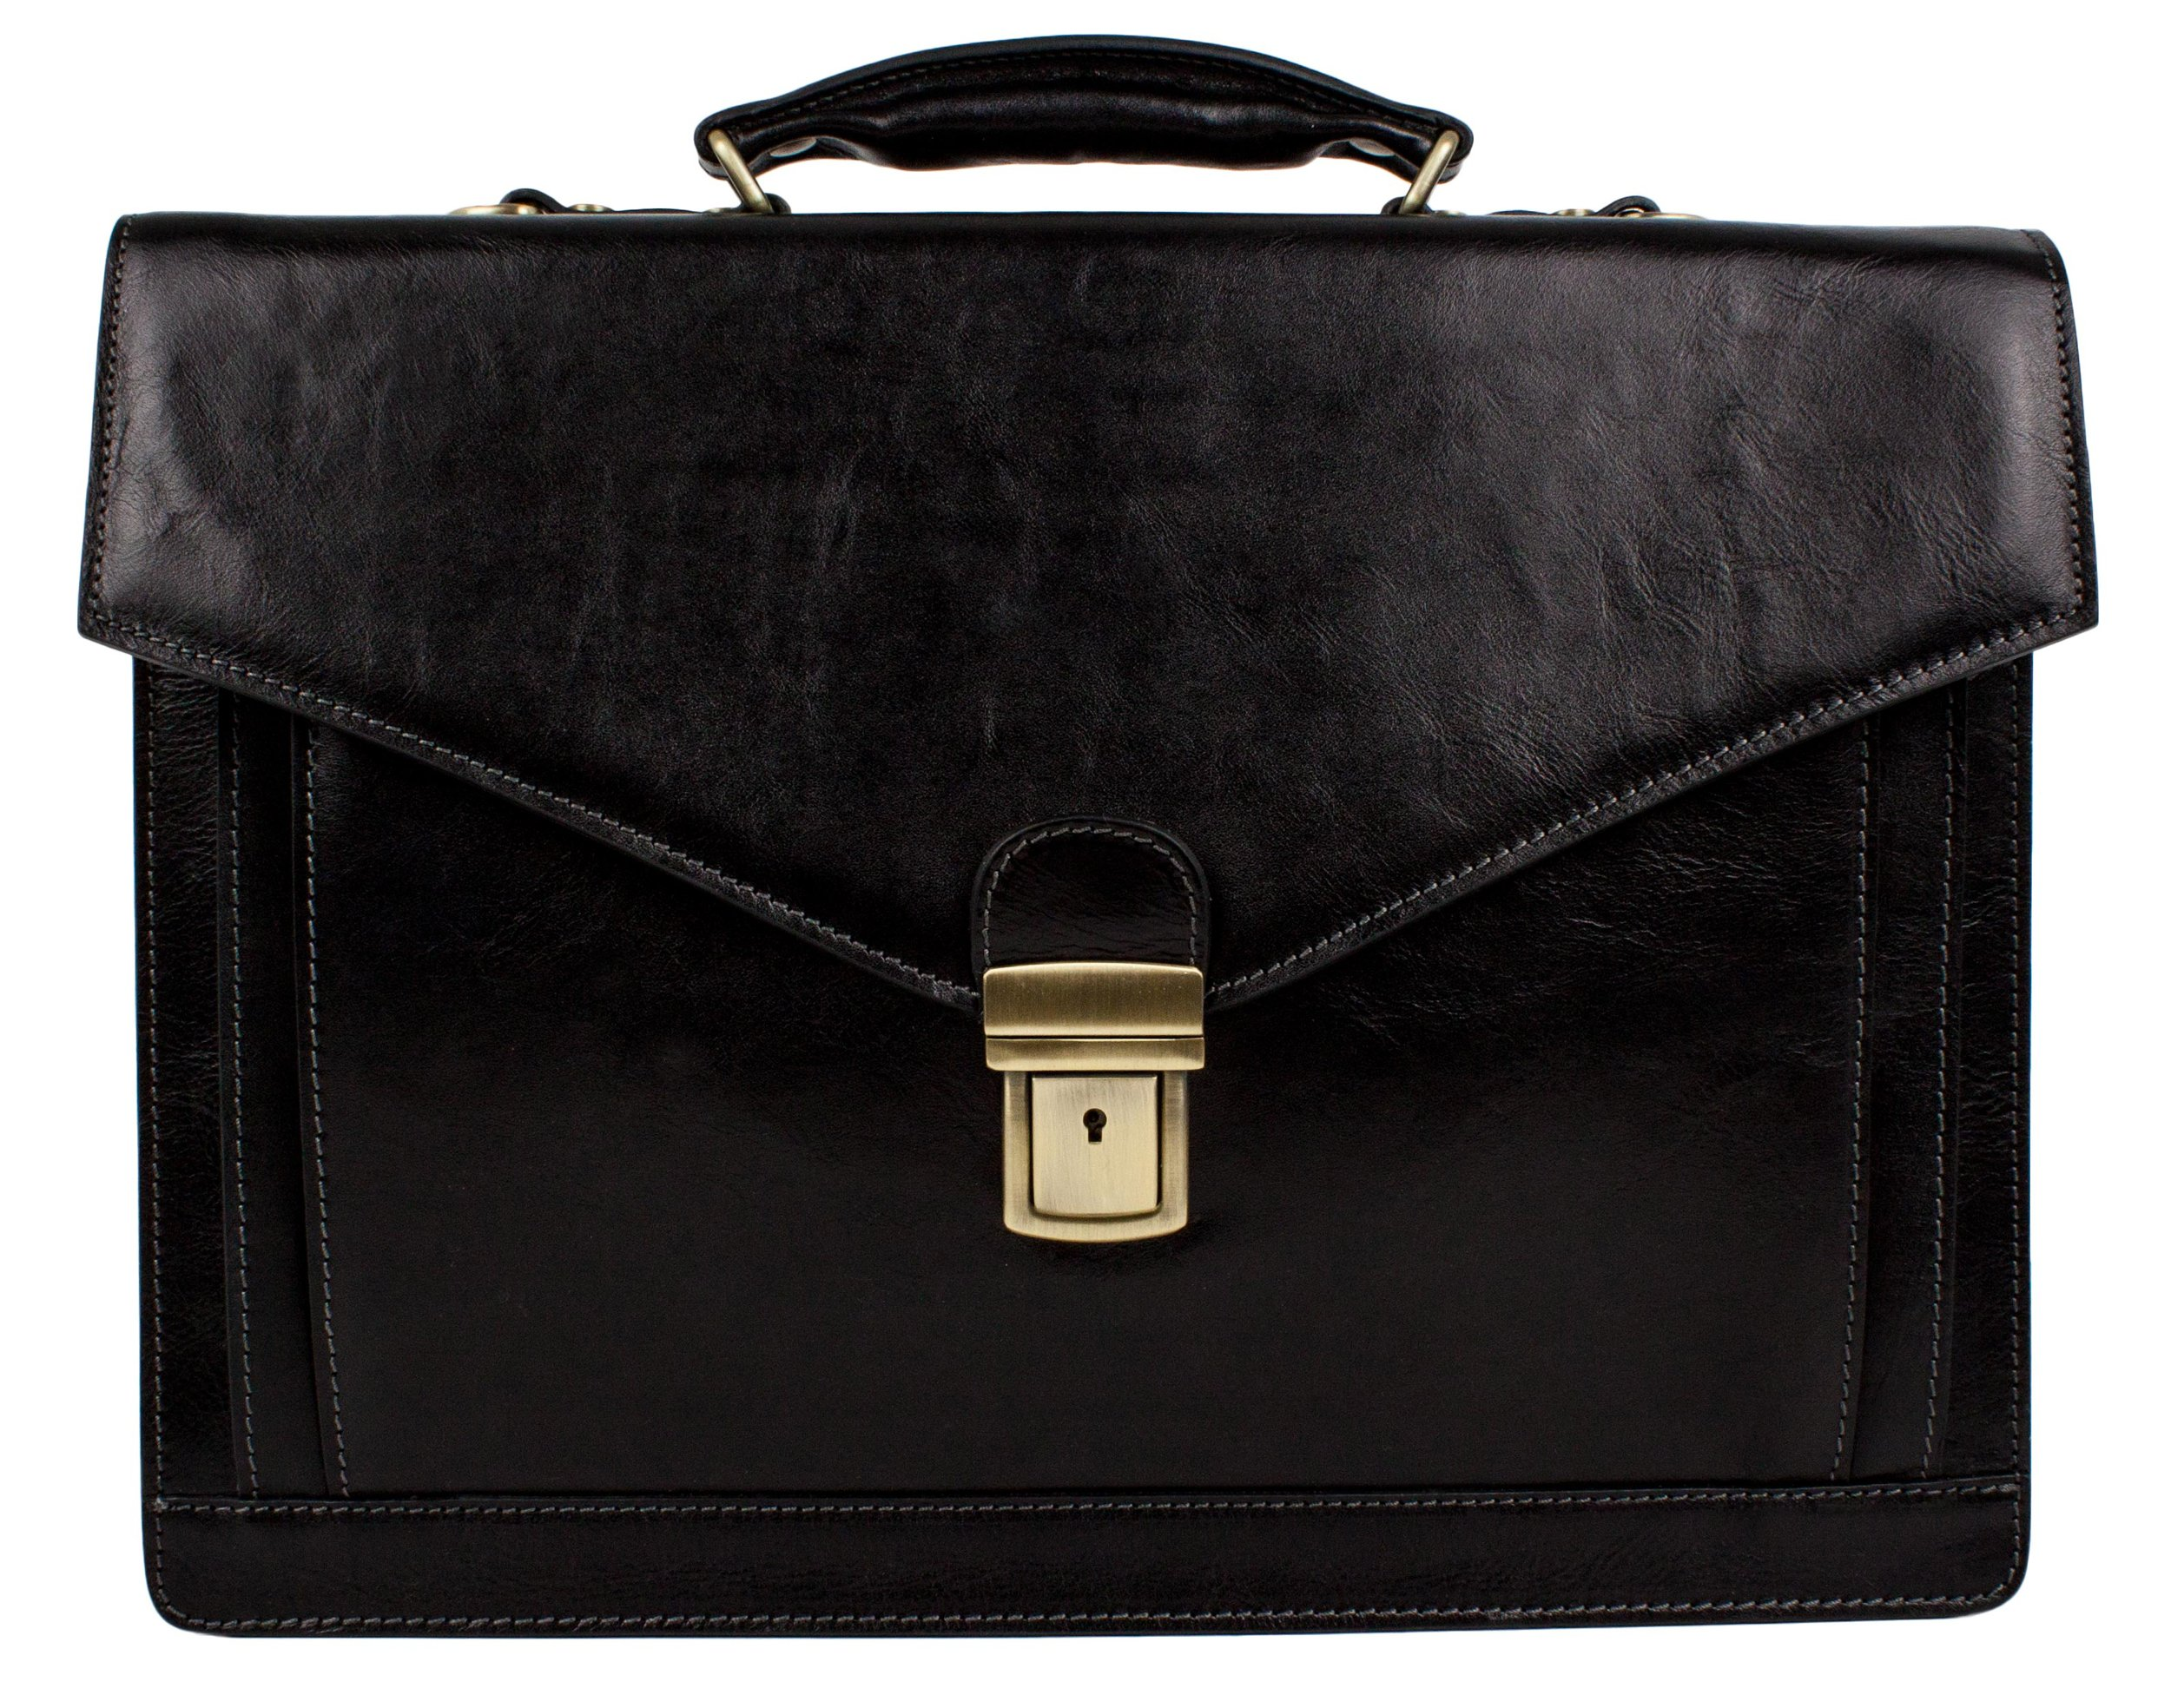 Leather Briefcase Laptop Bag Medium Attache Unisex Black Classic Style - Time Resistance